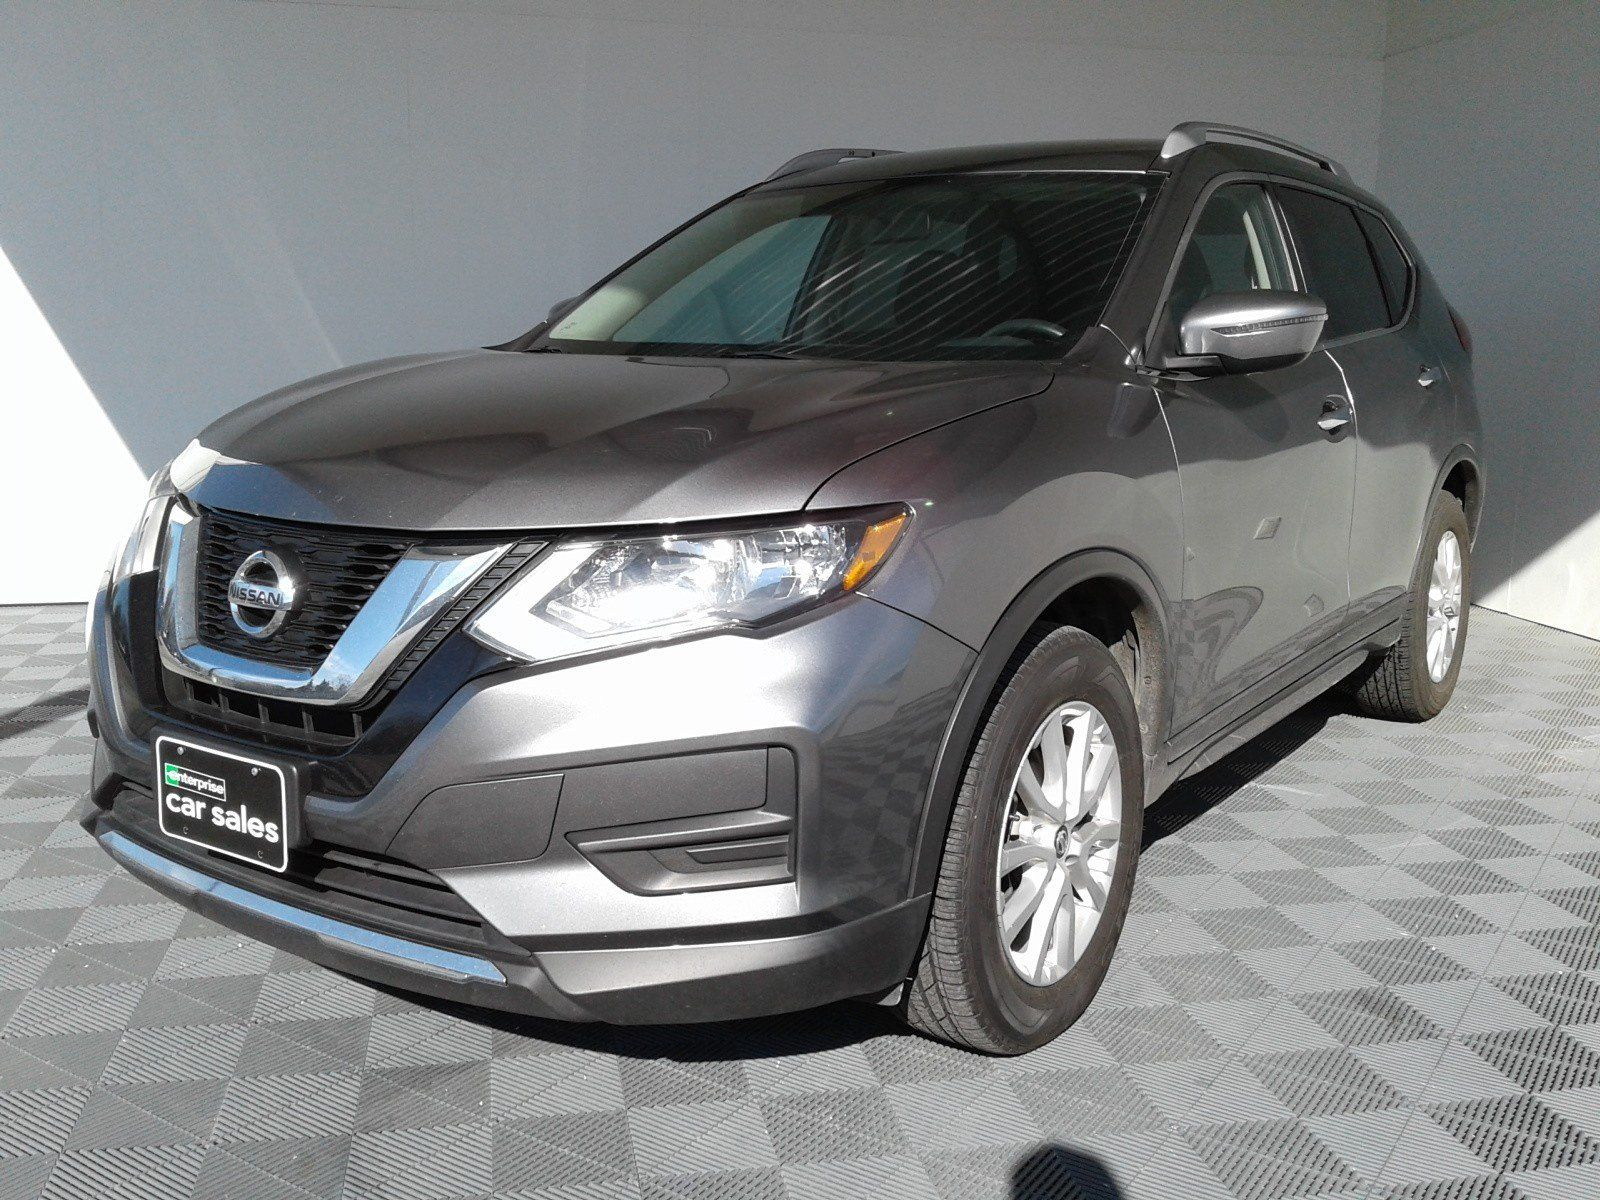 Enterprise Cars For Sale >> Used Nissan Rogue For Sale Houston Tx Enterprise Car Sales Car